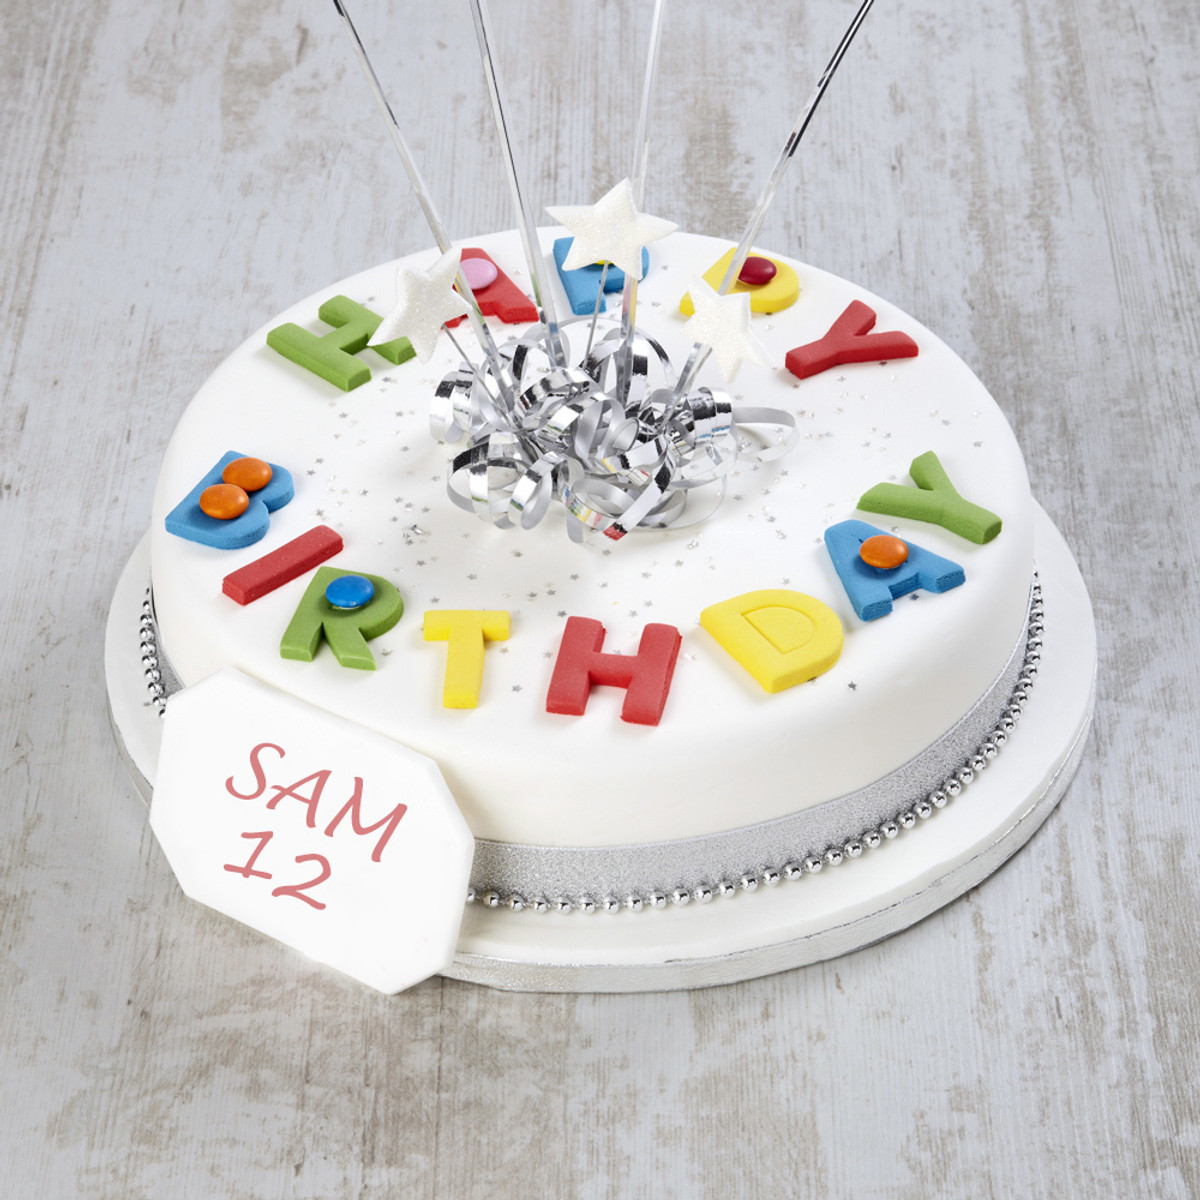 Superb Birthday Day Cake Order Online From The Brilliant Bakers Personalised Birthday Cards Veneteletsinfo